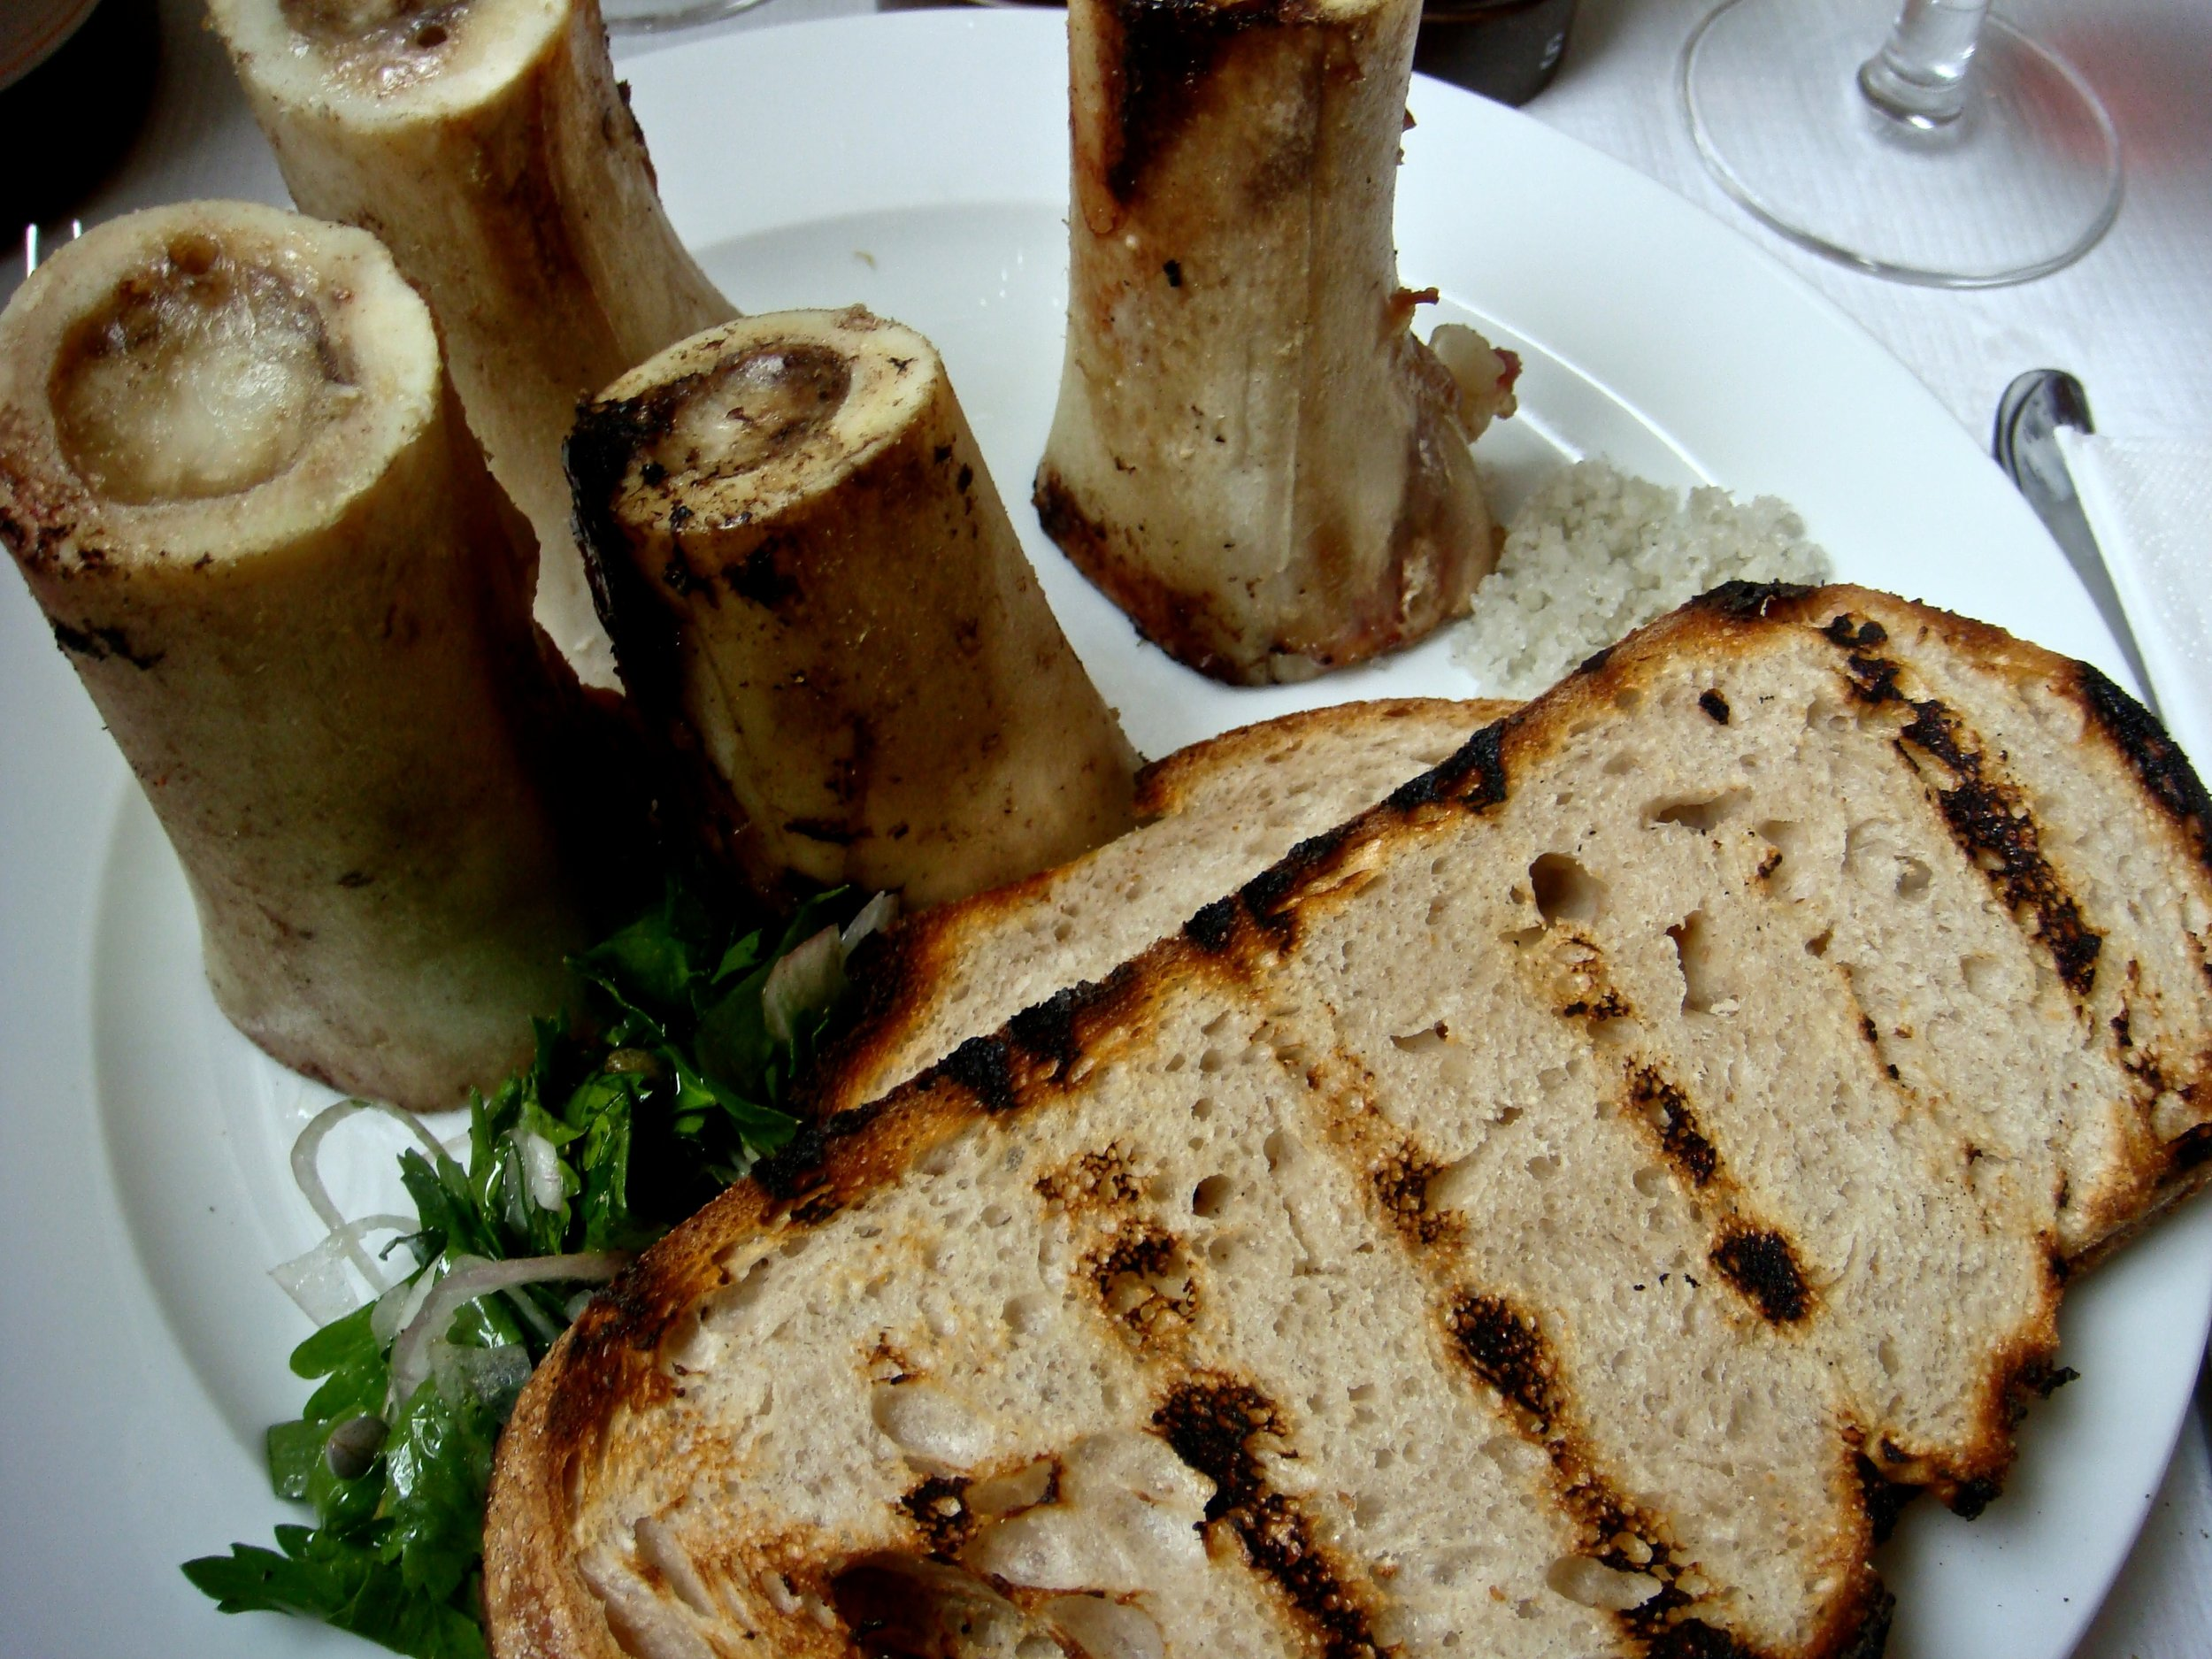 Roast_Bone_Marrow_&_Parsley_Salad_(3512154149).jpg